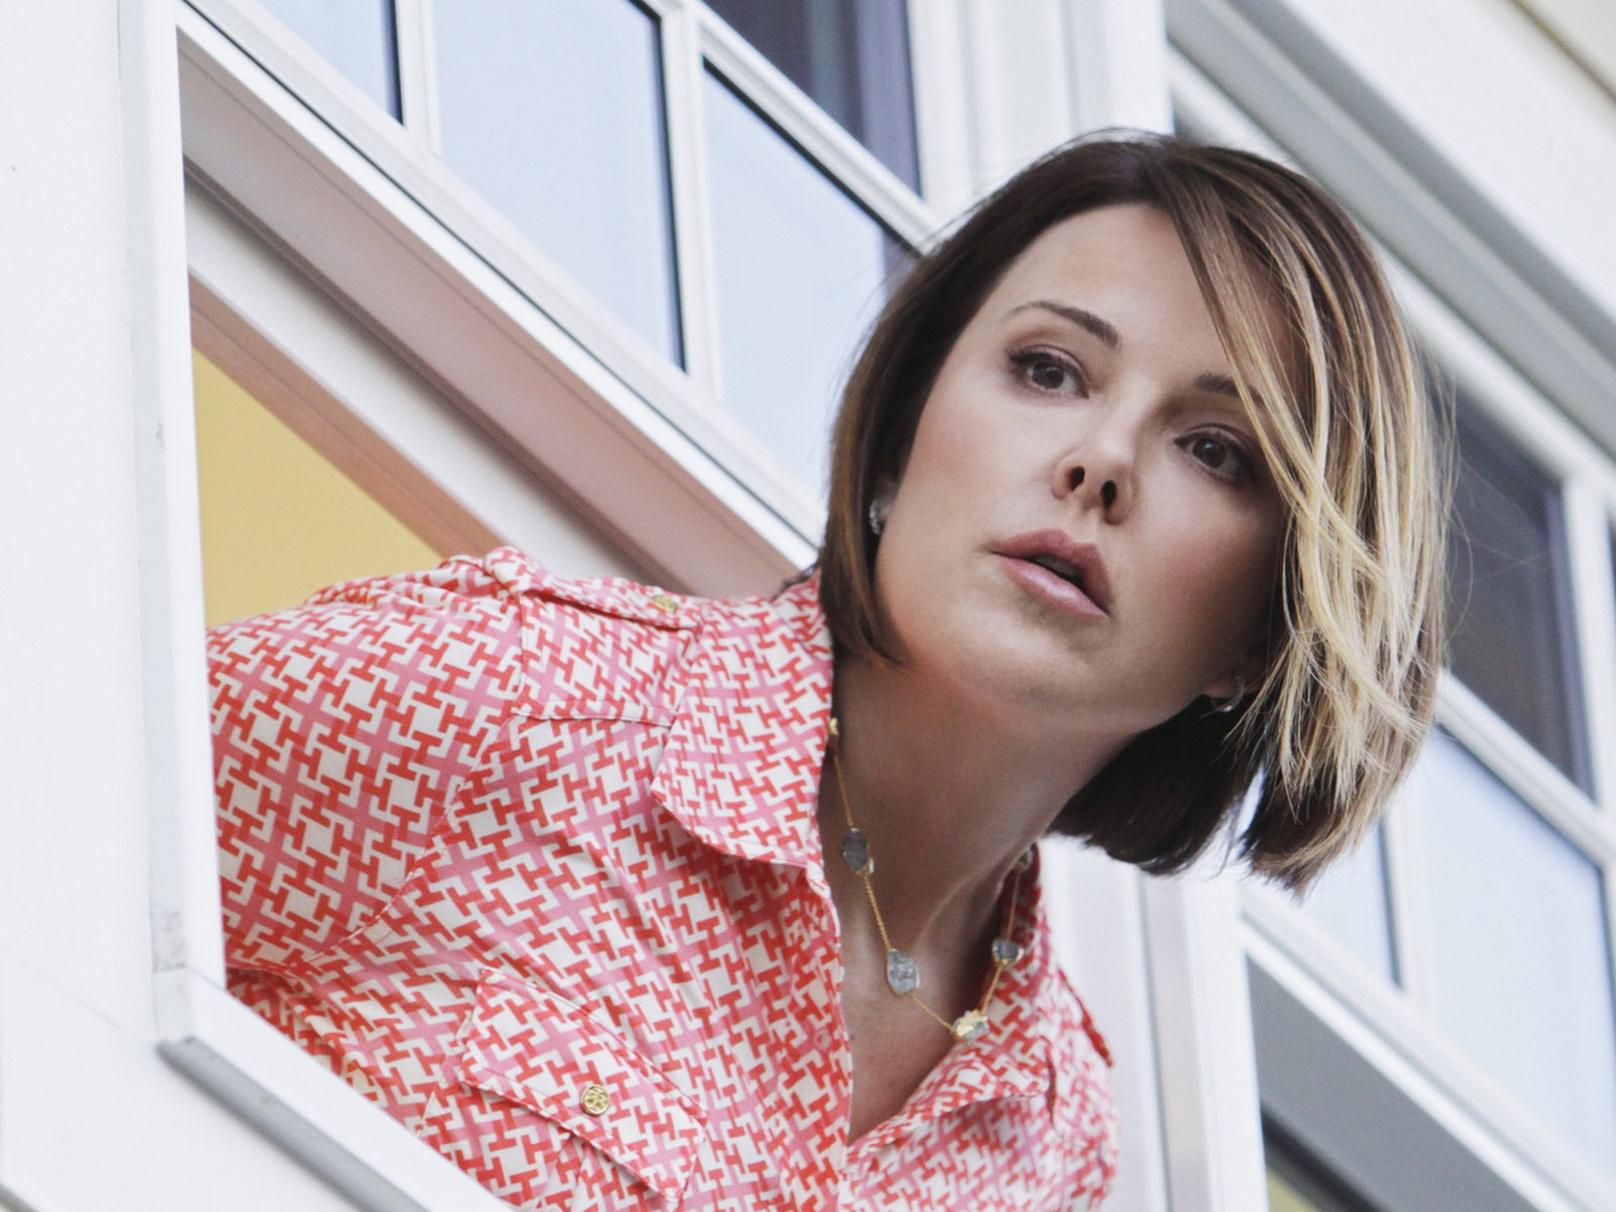 Christa Miller Wallpapers High Resolution And Quality Download